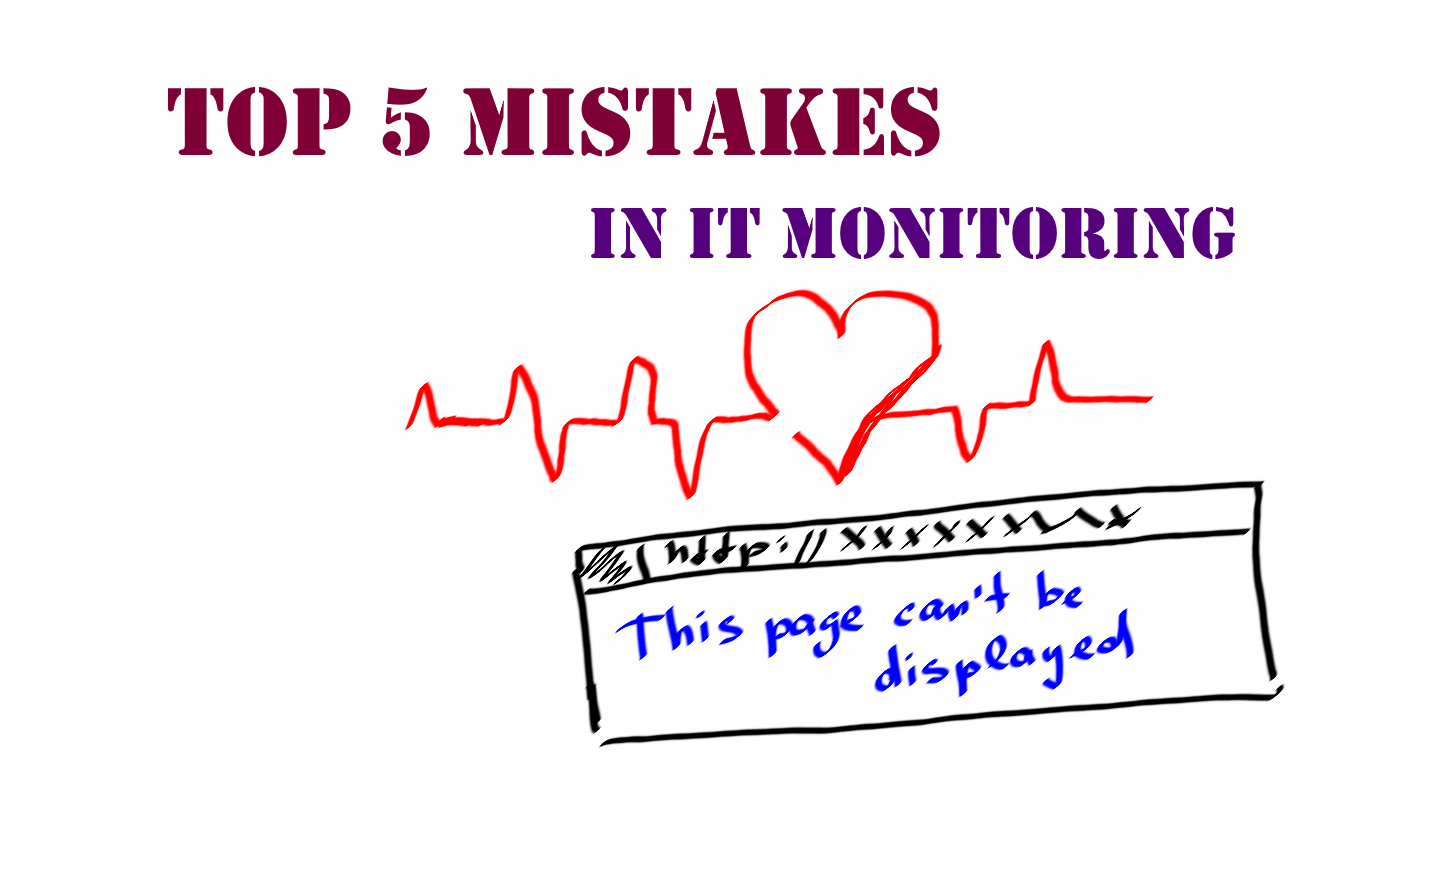 Top 5 mistakes in IT monitoring